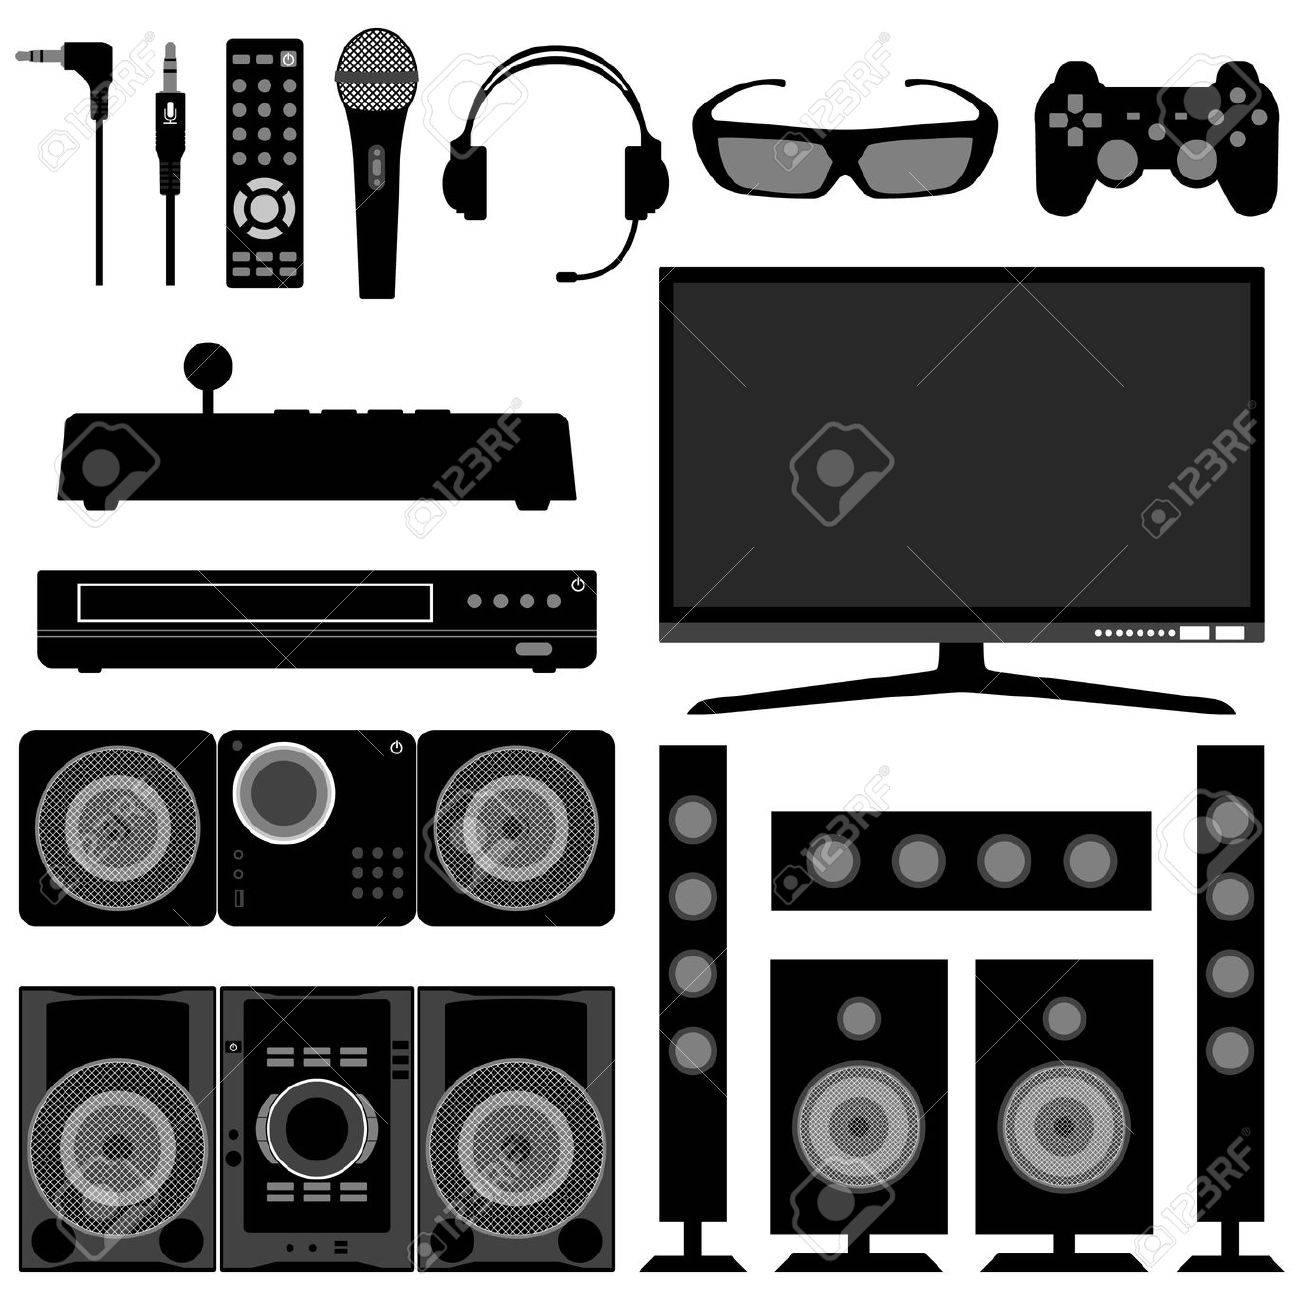 Audio Visual System Electronic Electrical Appliances for Living Room Stock  Vector   18811993Audio Visual System Electronic Electrical Appliances For Living  . Living Room Appliances. Home Design Ideas